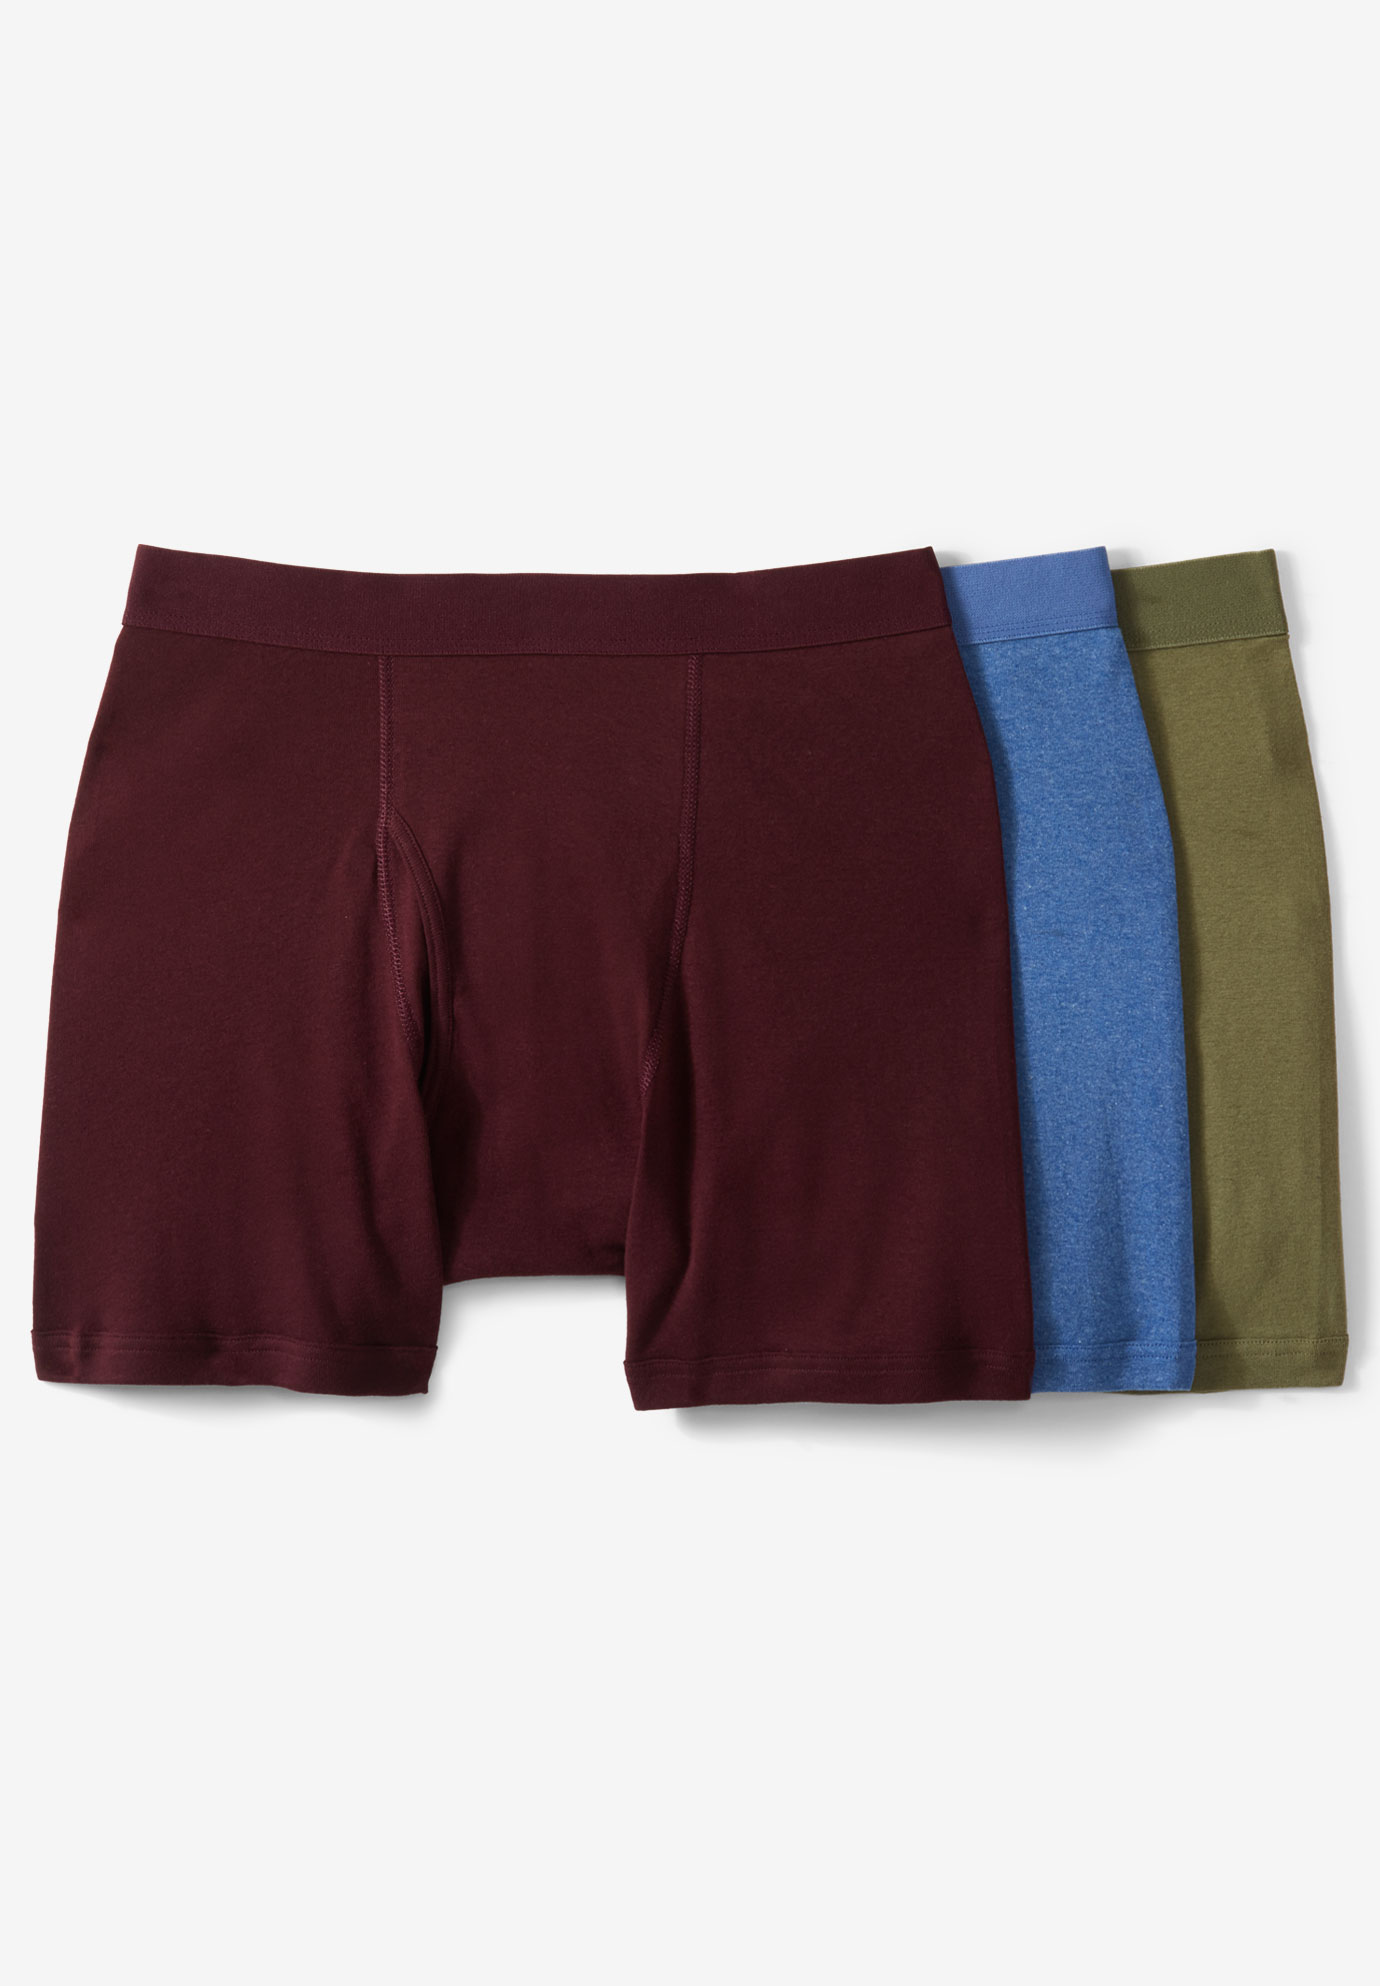 Cotton Mid-Length Briefs 3-Pack,